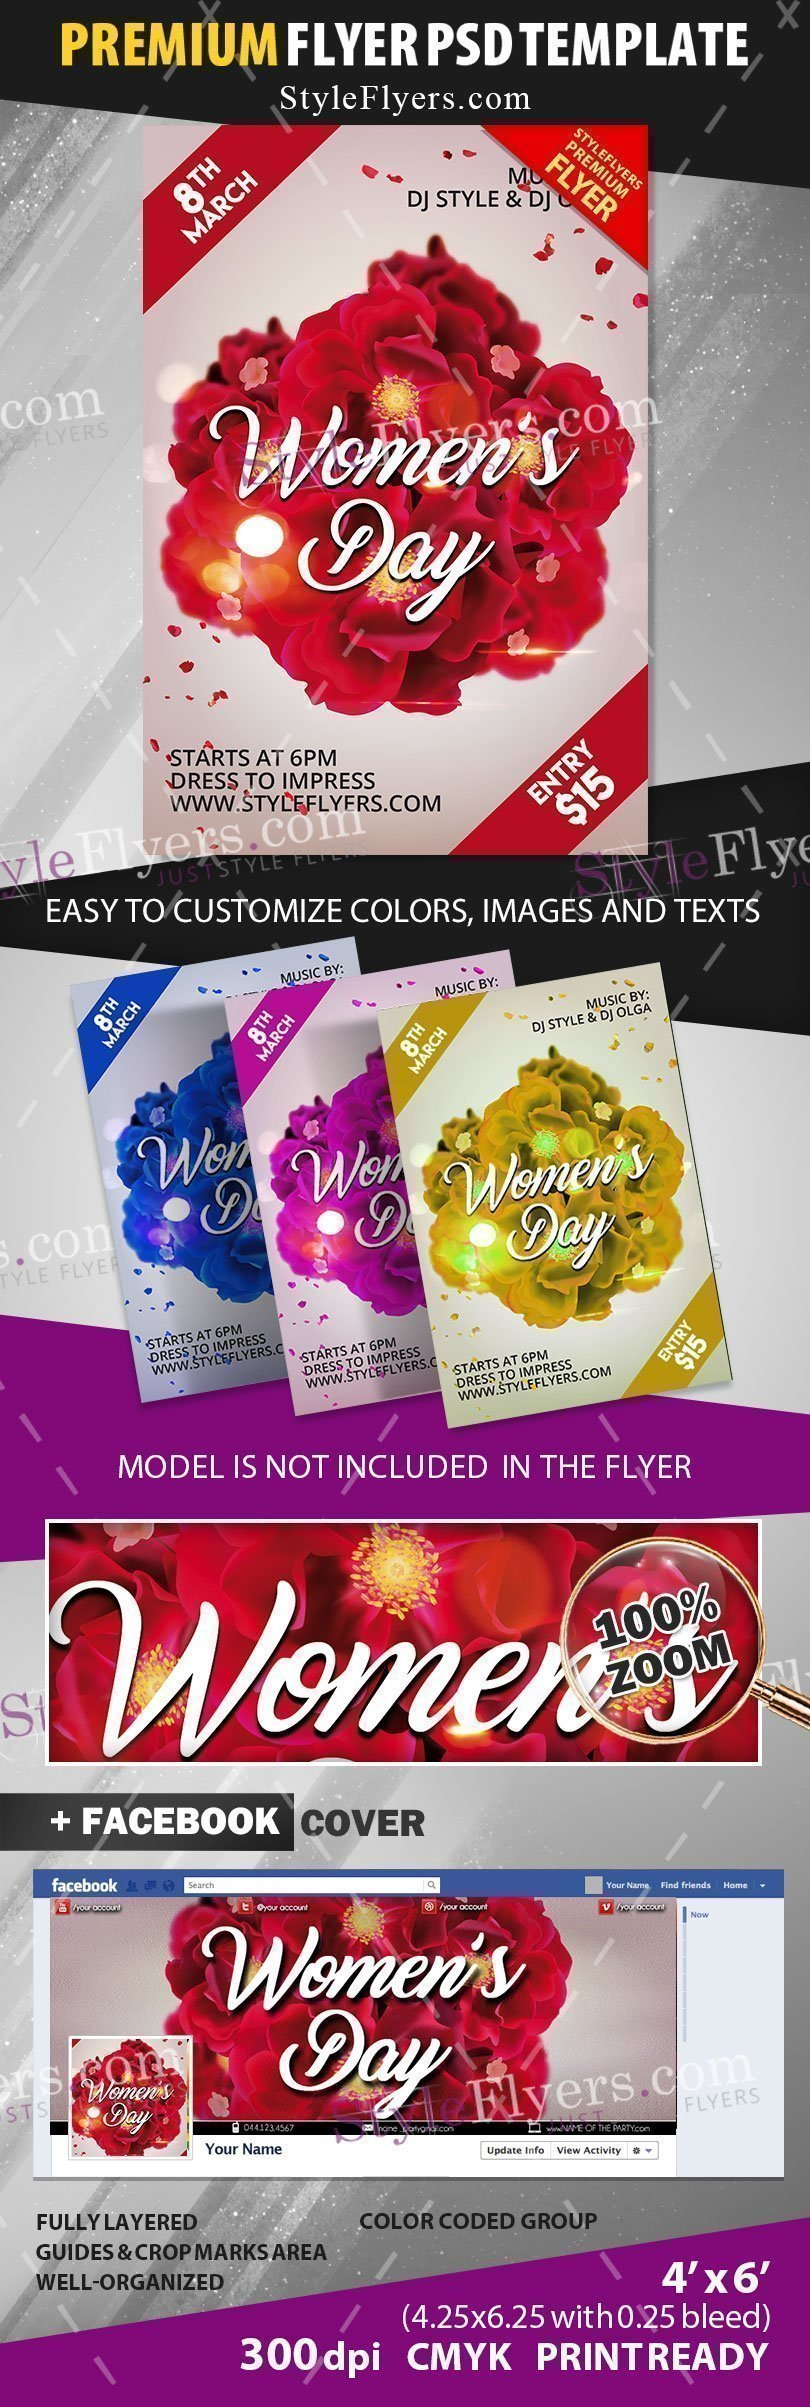 preview_WOMENS_DAY_Flyer_premium_template